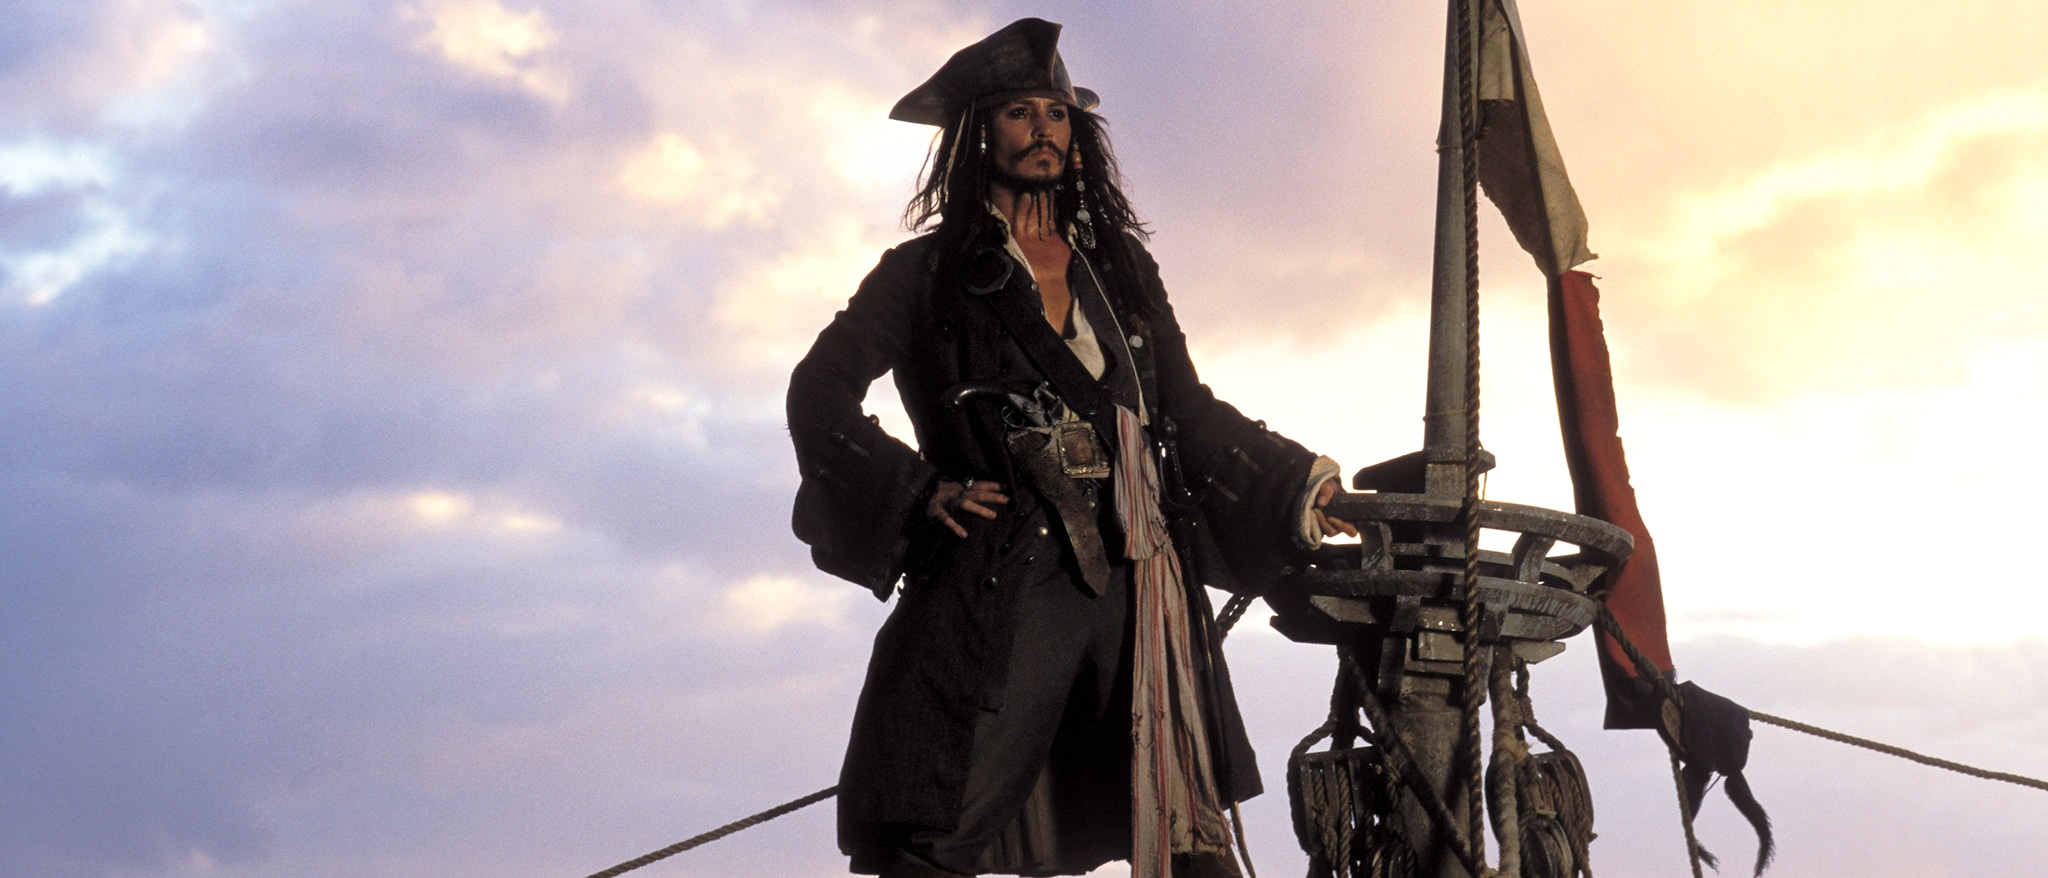 Pirates of the Caribbean: The Curse of the Black Pearl Hero